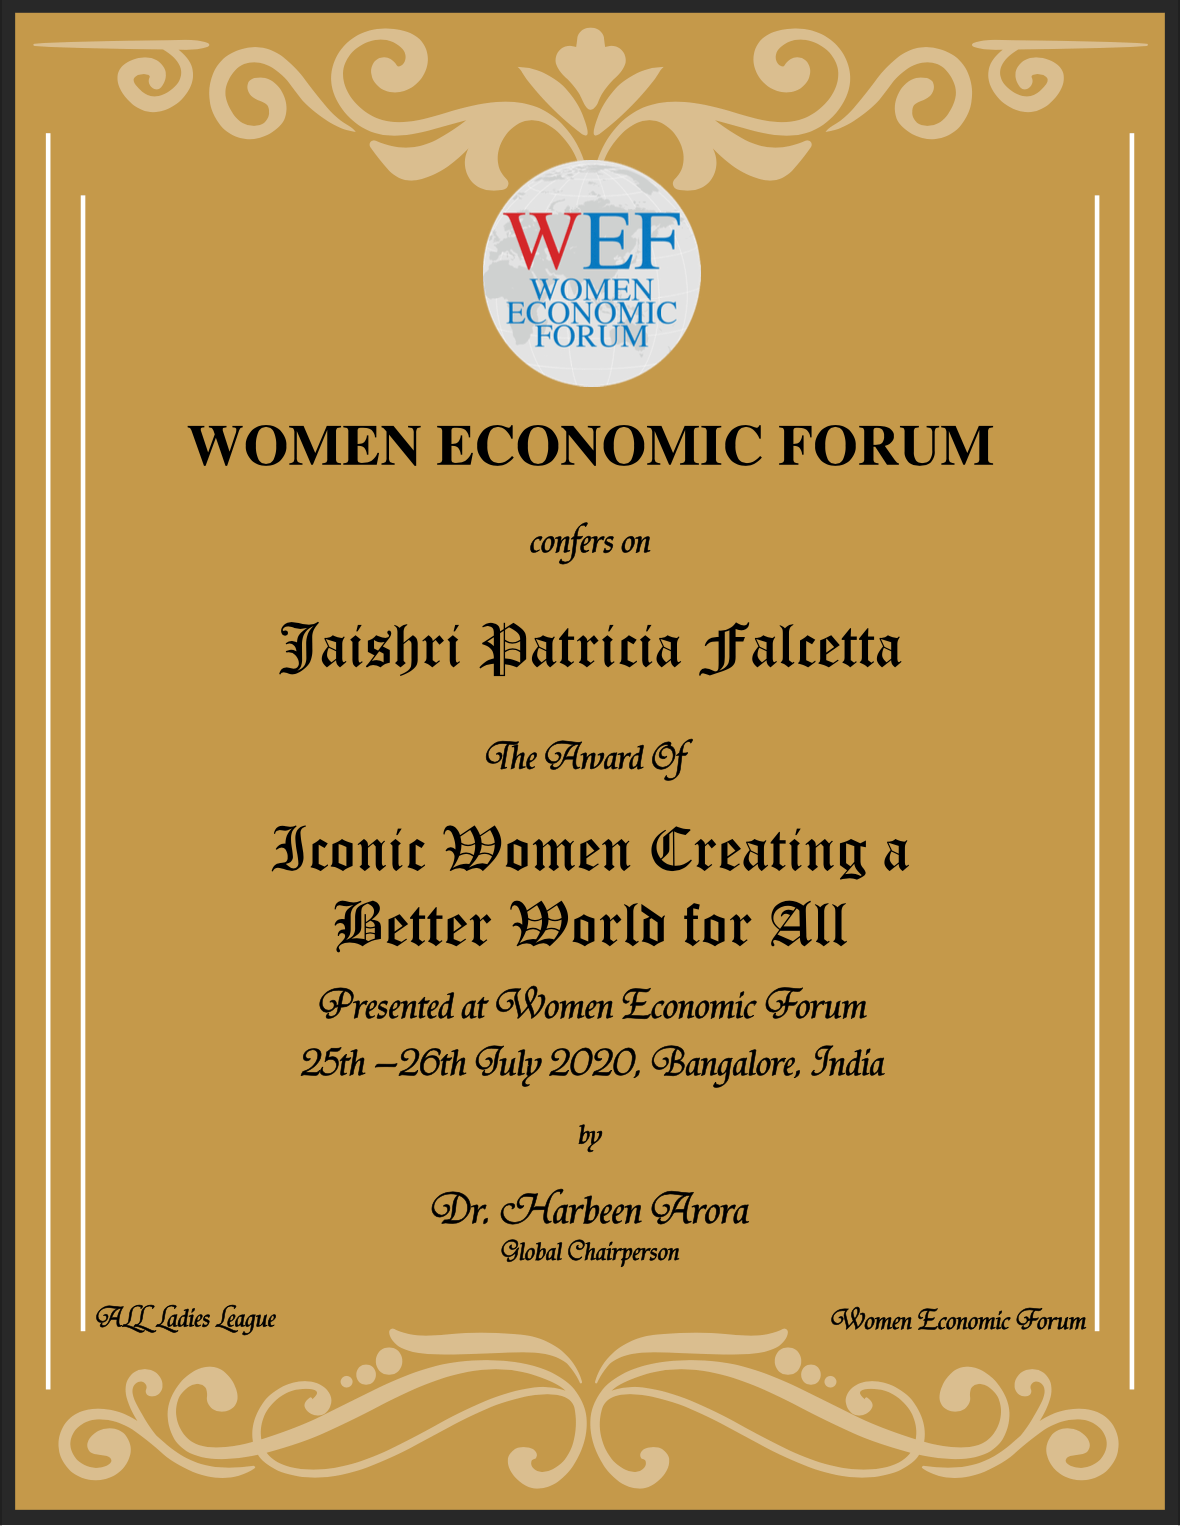 women-economic-forum-award-patricia-falcetta